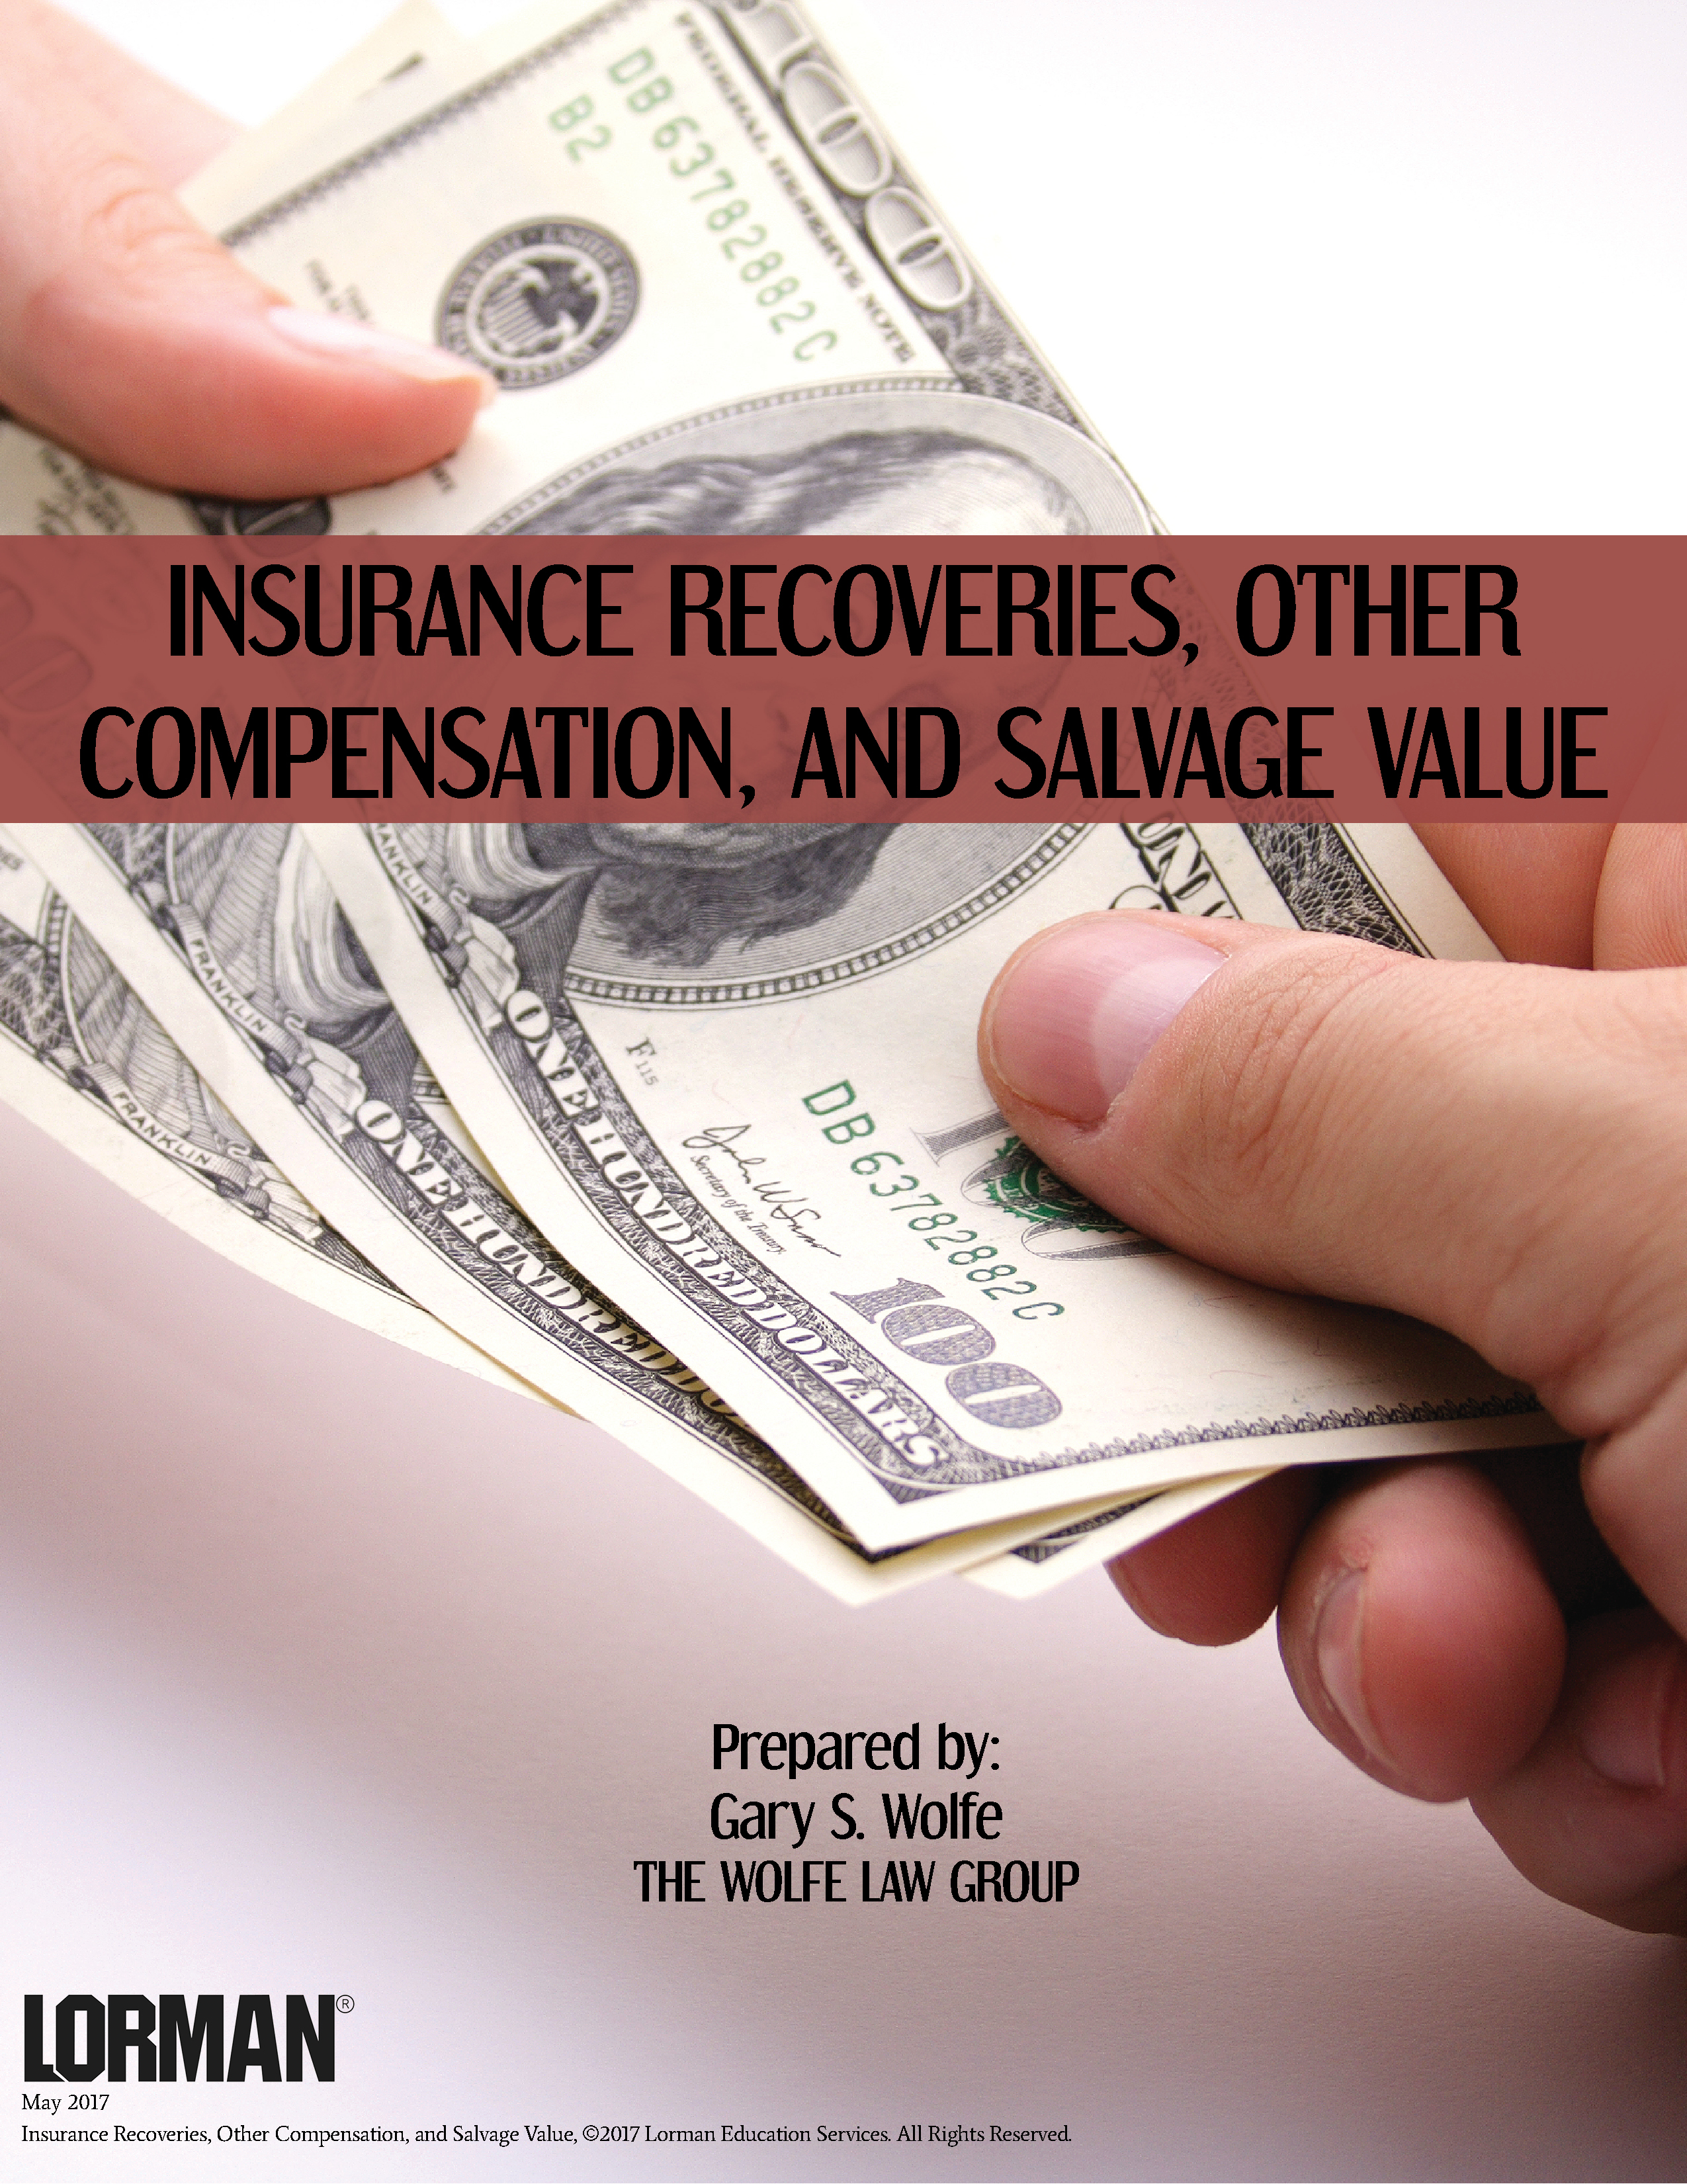 Insurance Recoveries, Other Compensation, and Salvage Value